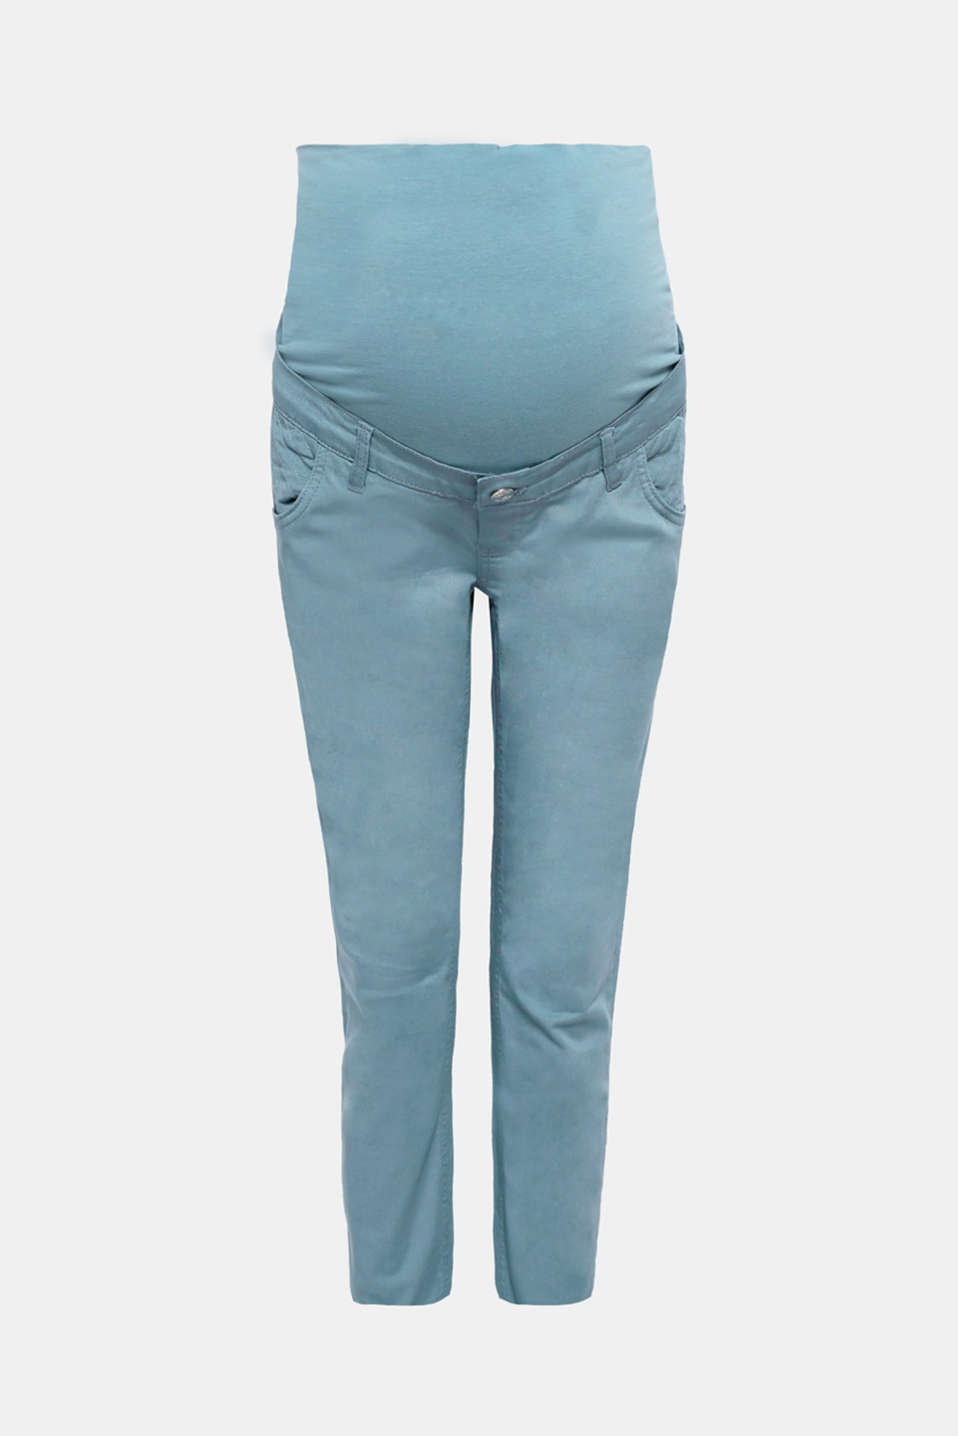 Esprit - Stretch trousers with decorative stitching and an over-bump waistband